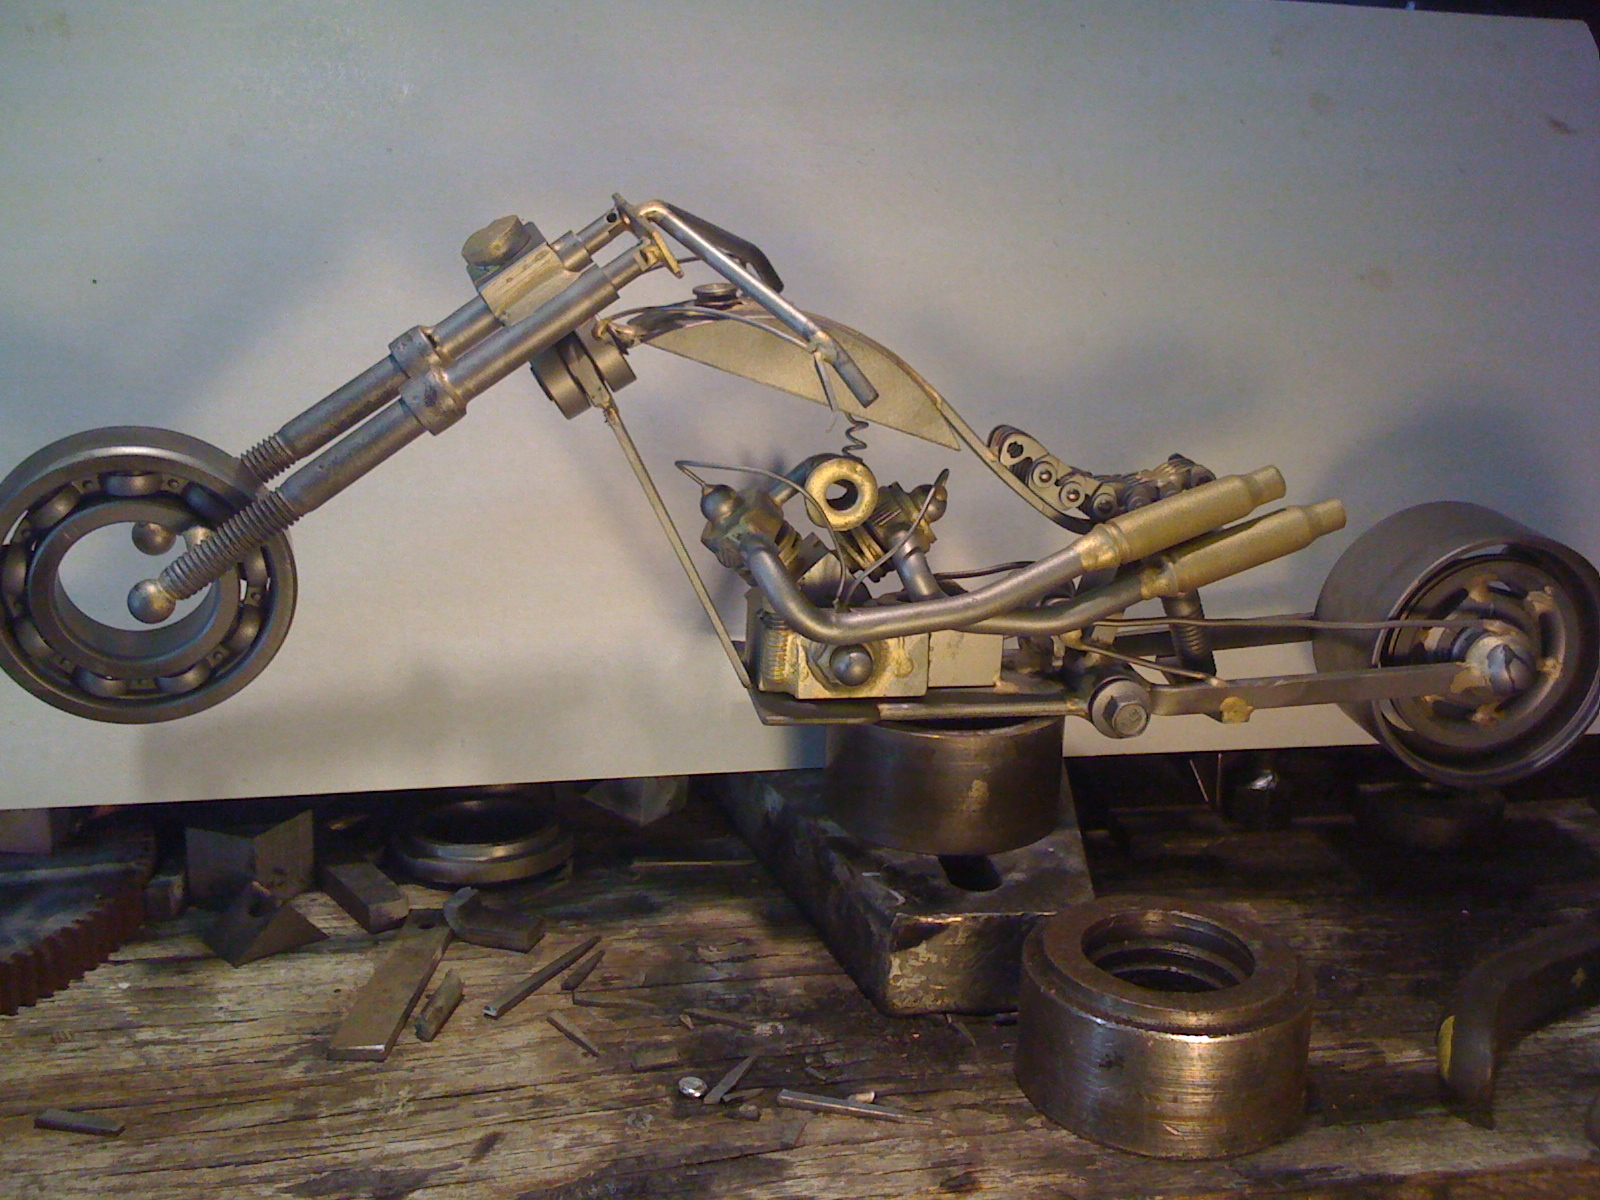 Steampunk Motorcycle Sculpture